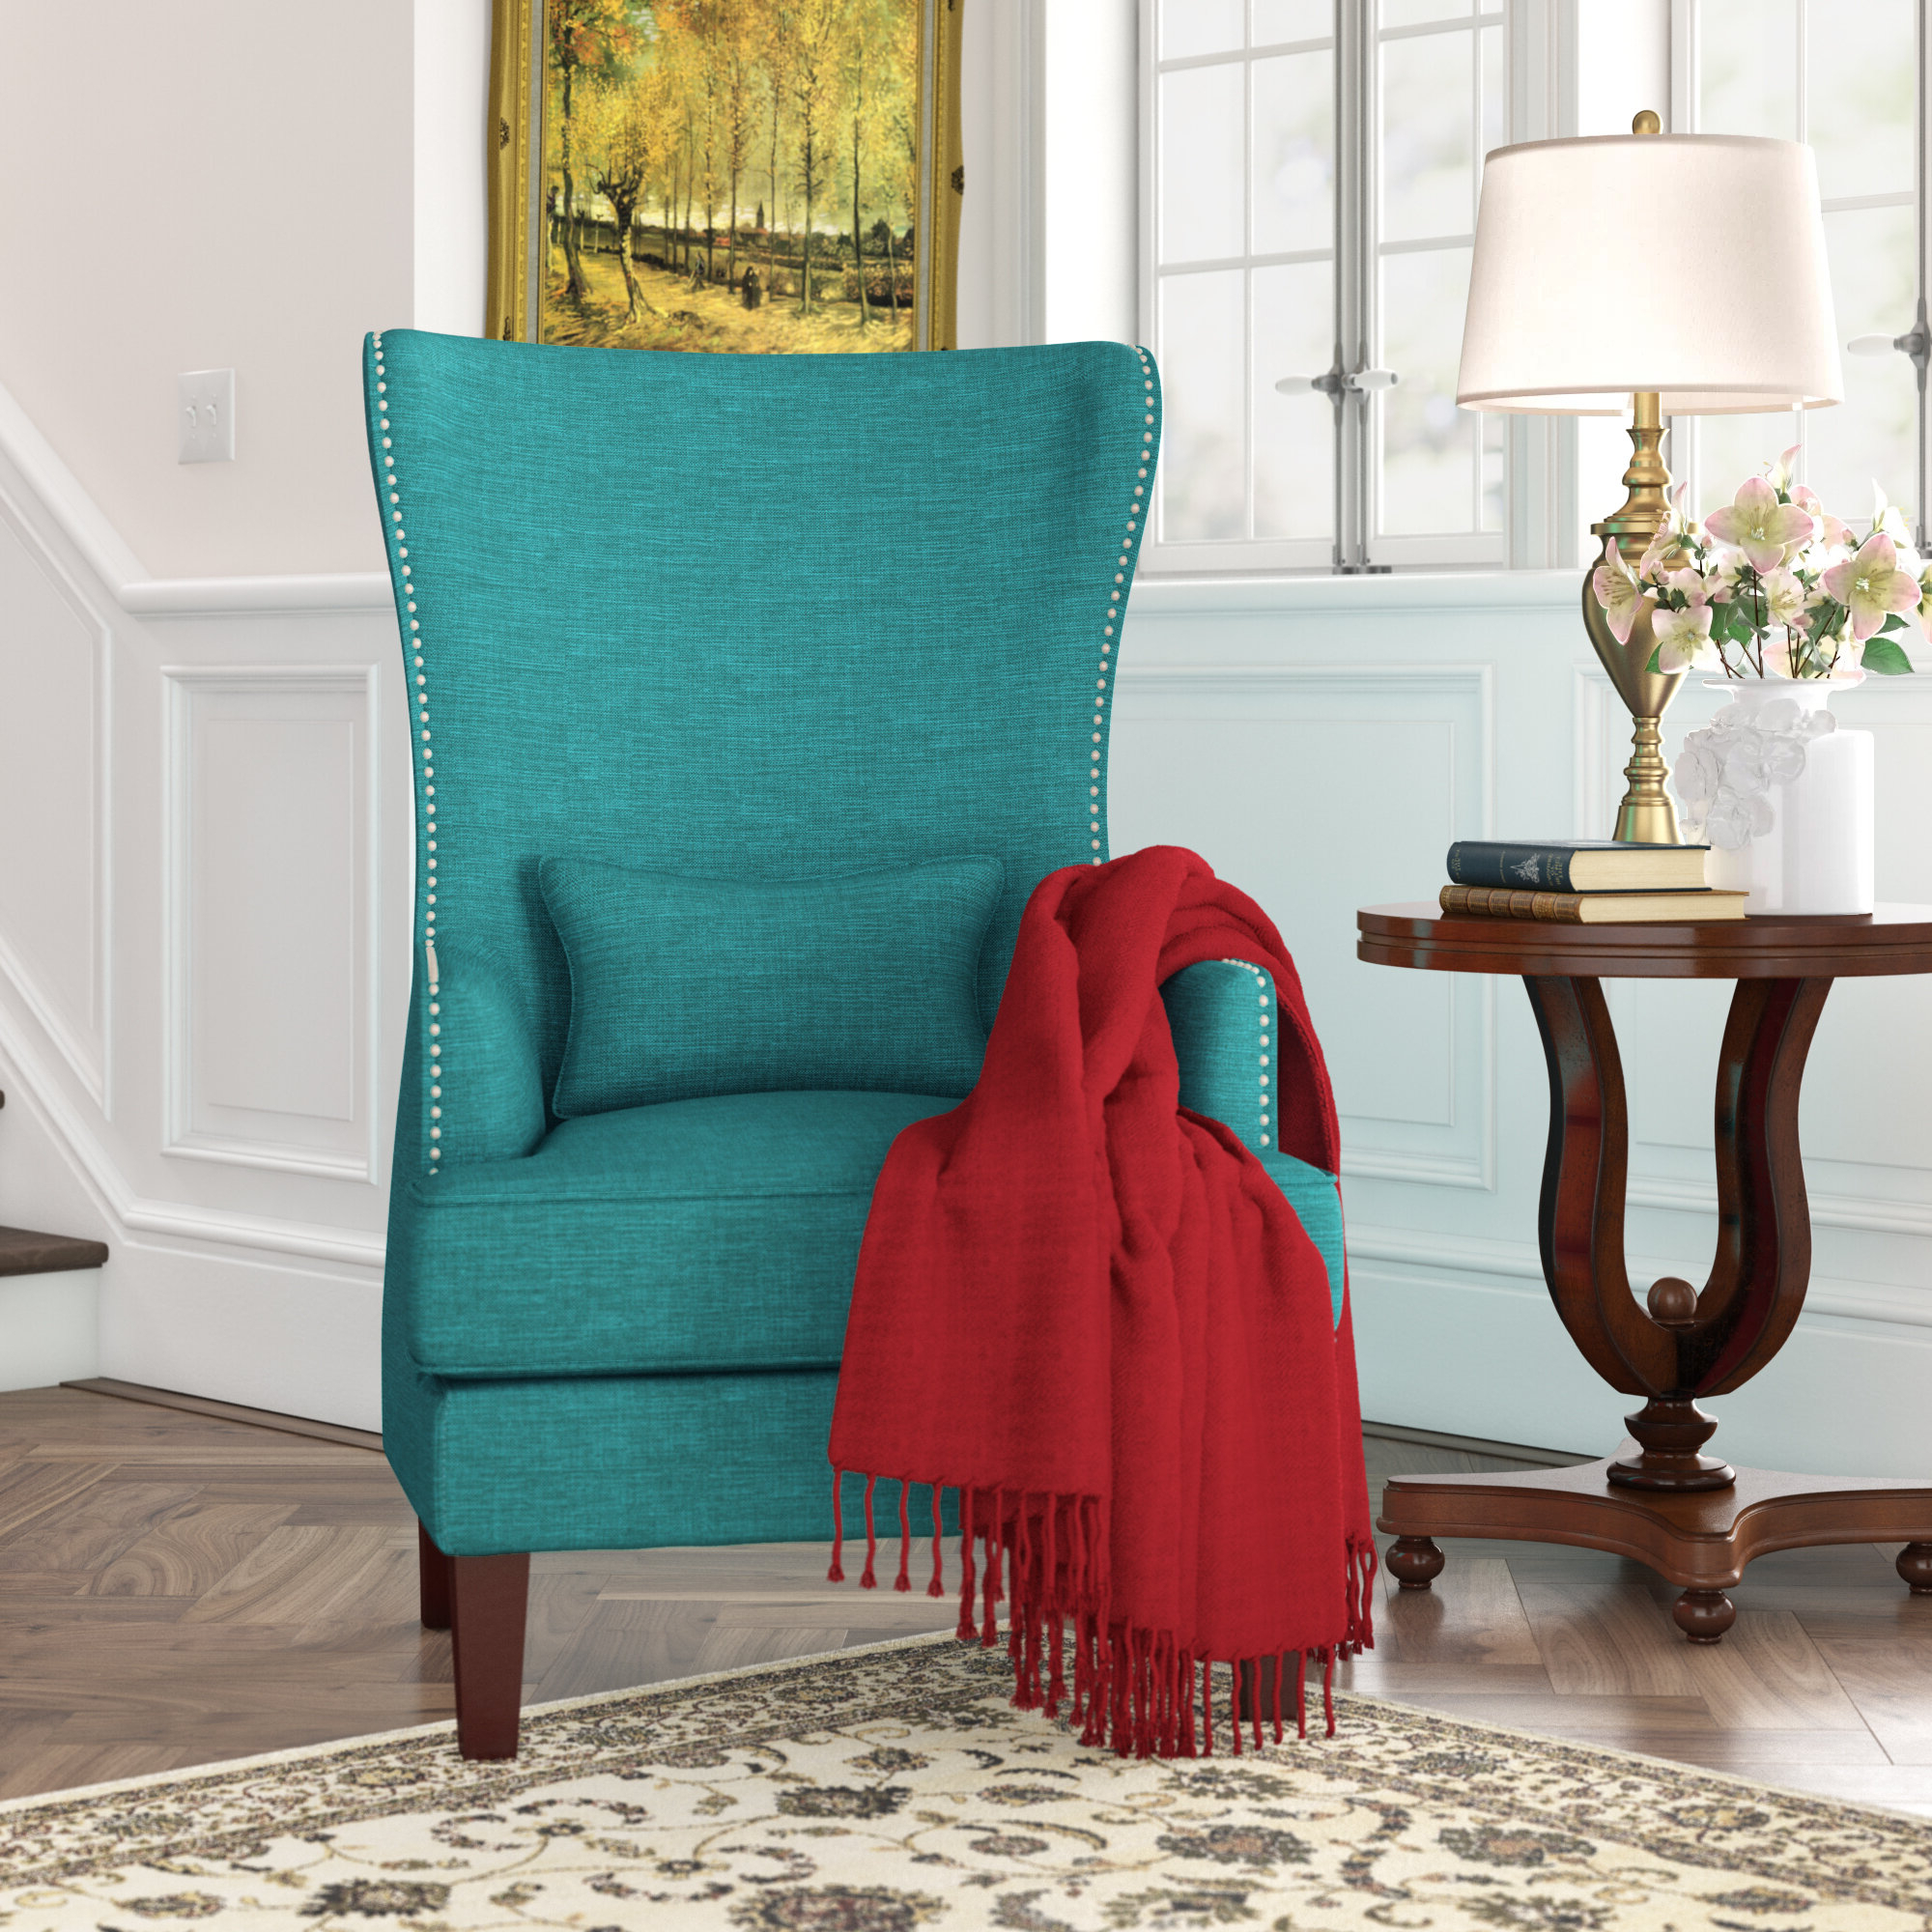 Best And Newest Pringle Wingback Chair Throughout Andover Wingback Chairs (View 6 of 20)